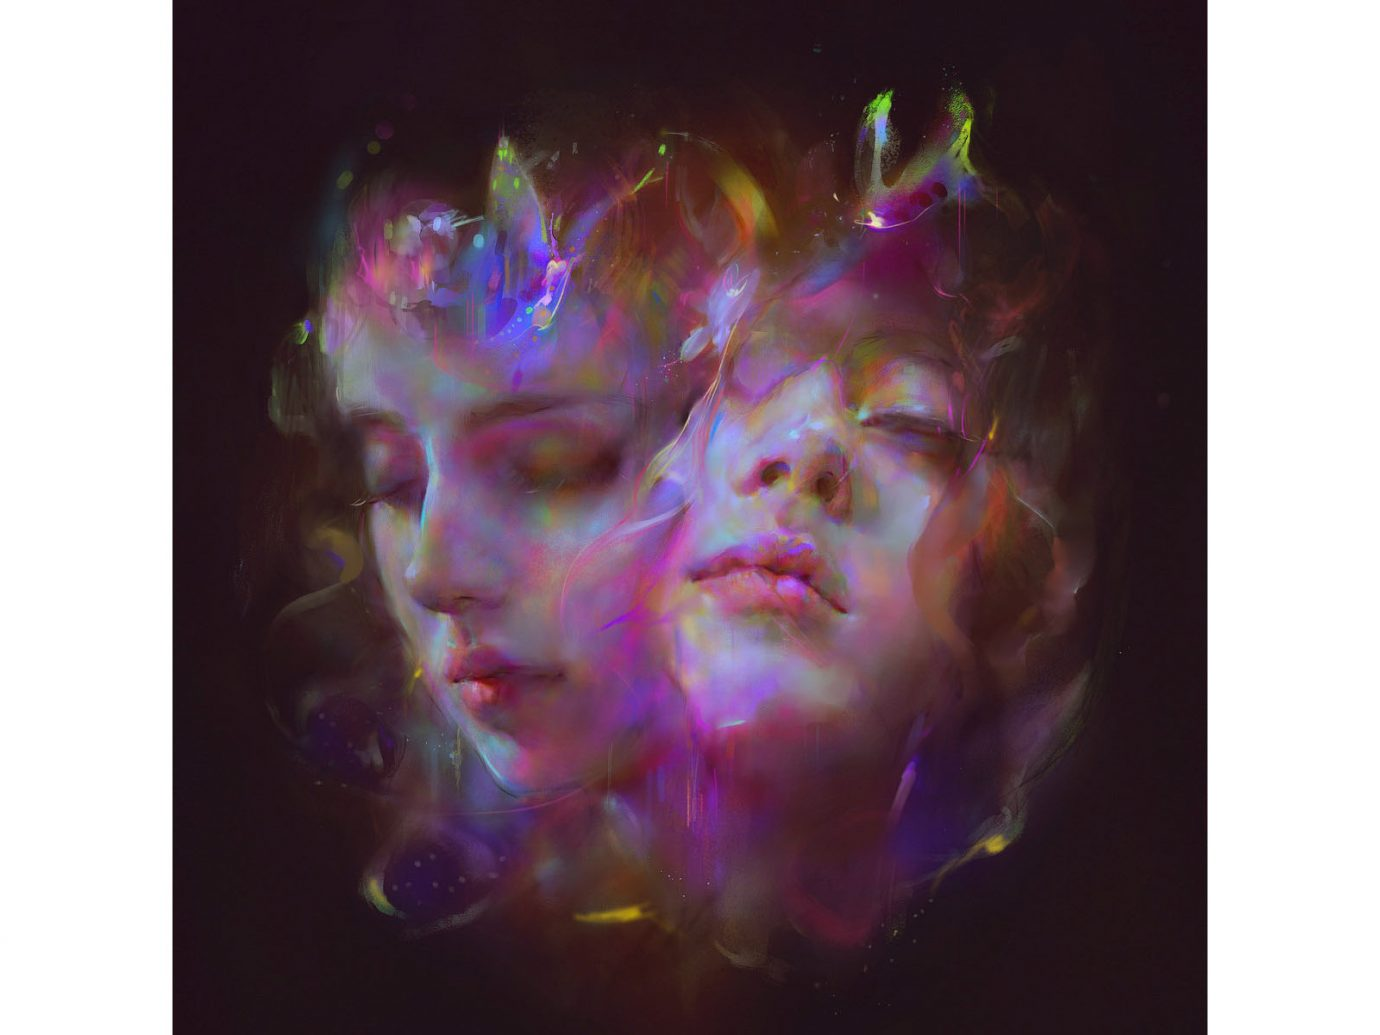 I'm All Eats by Let's Eat Grandma